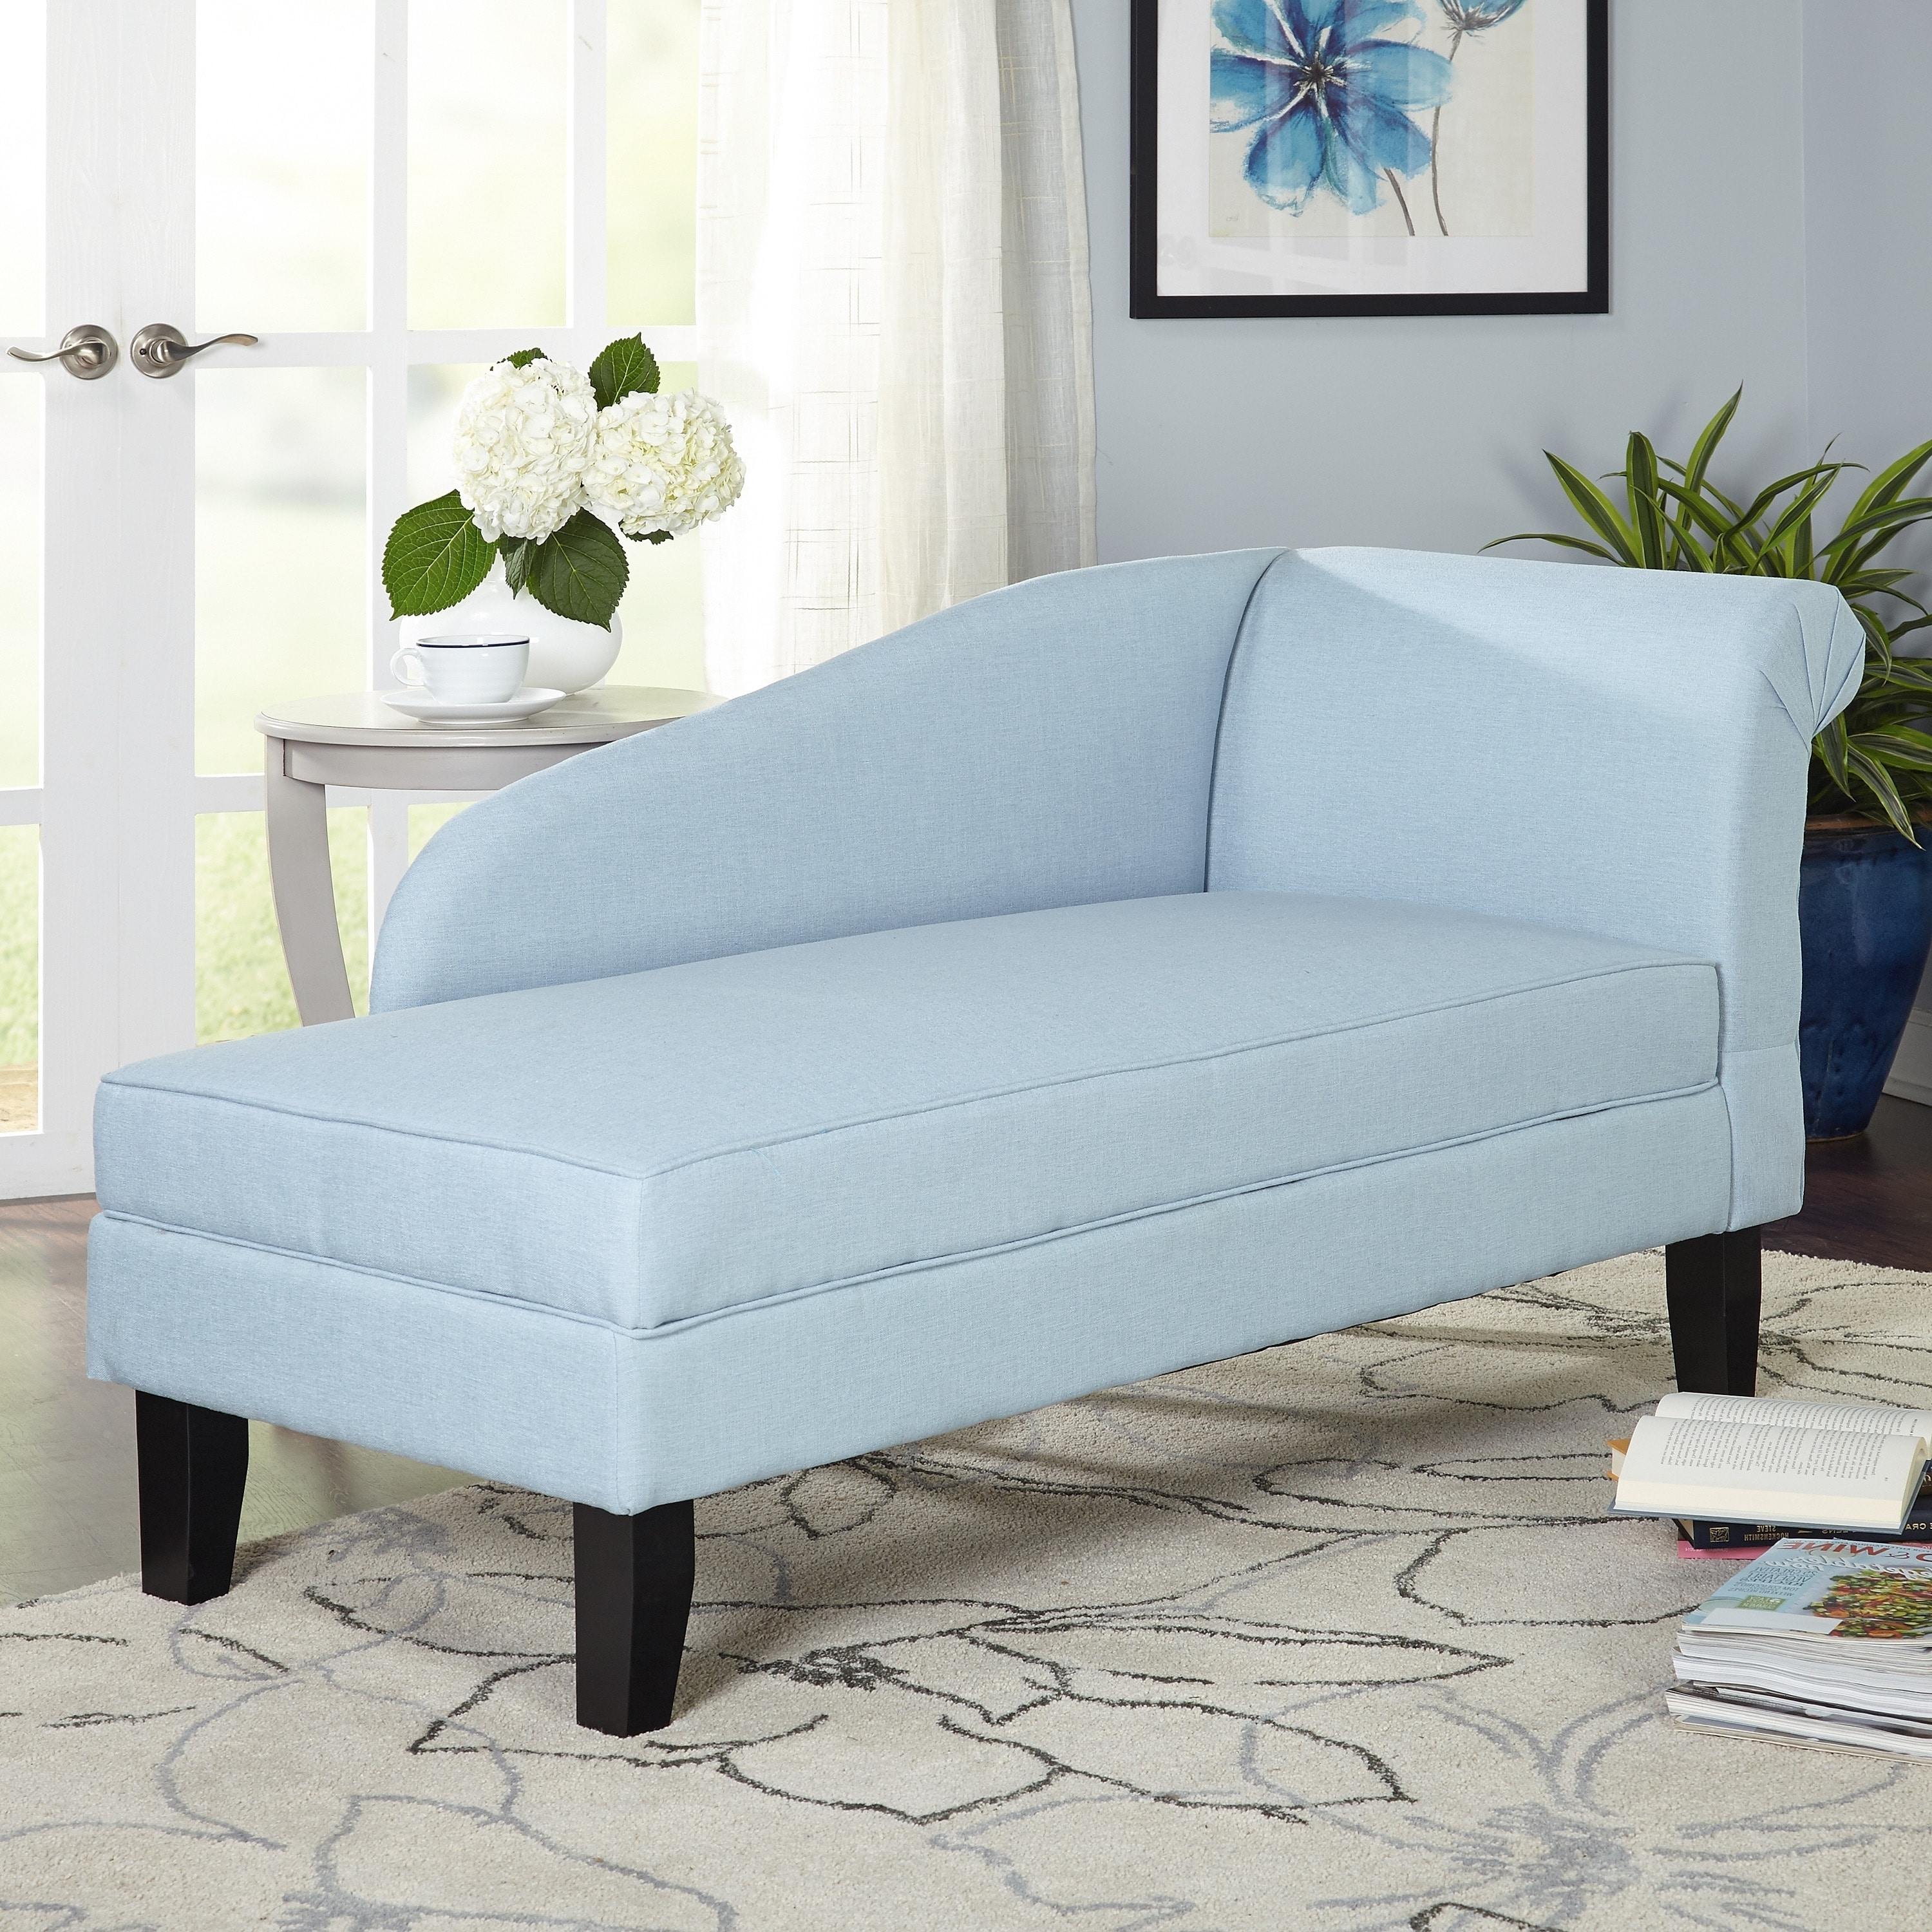 Chaise Lounges With Storage Pertaining To Most Recent Simple Living Chaise Lounge With Storage Compartment – Free (View 13 of 15)